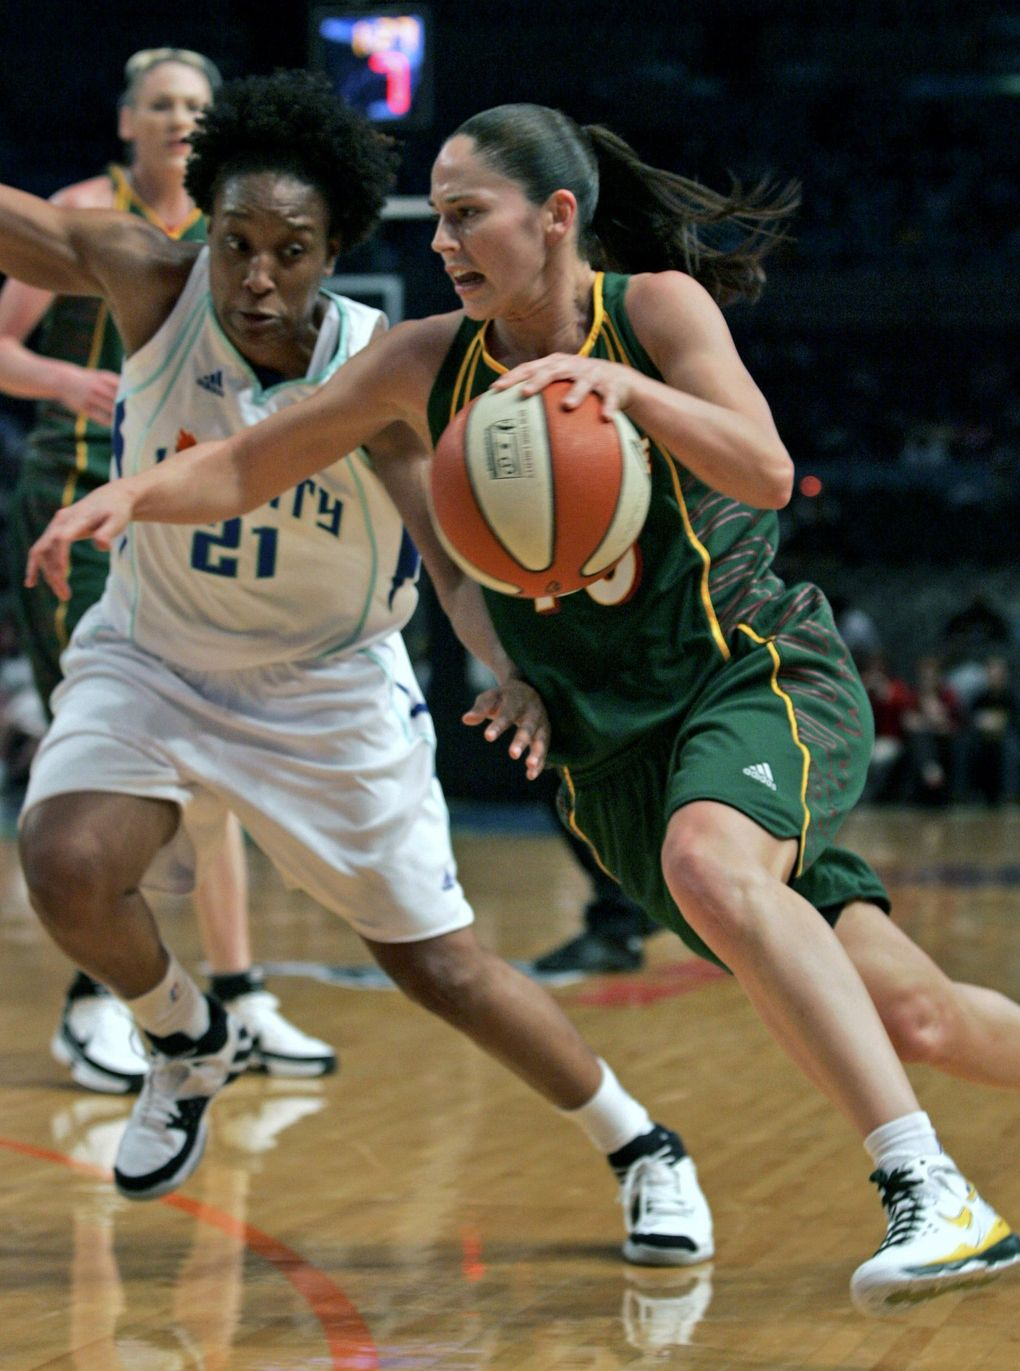 Seattle Storm's Sue Bird, right, drives past New York Liberty's Loree Moore (21) during the first half of a WNBA basketball game Tuesday, June 3, 2008  in New York.  (AP Photo/Frank Franklin II) NYFF102  (Frank Franklin II / The Associated Press)